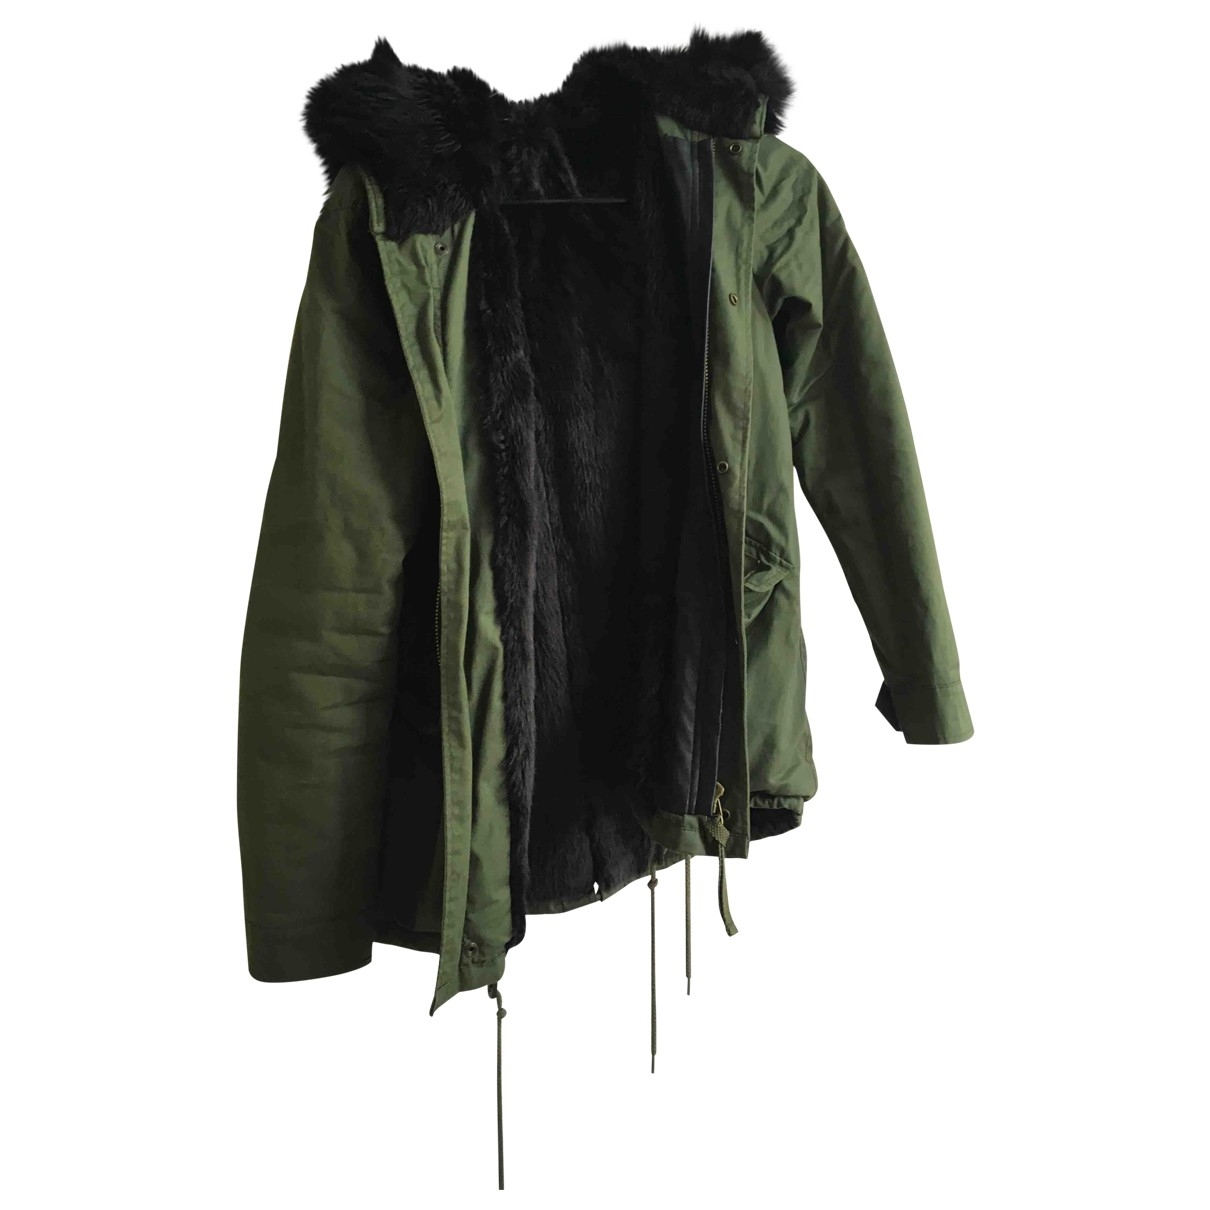 Zara \N Green coat for Women 36 FR